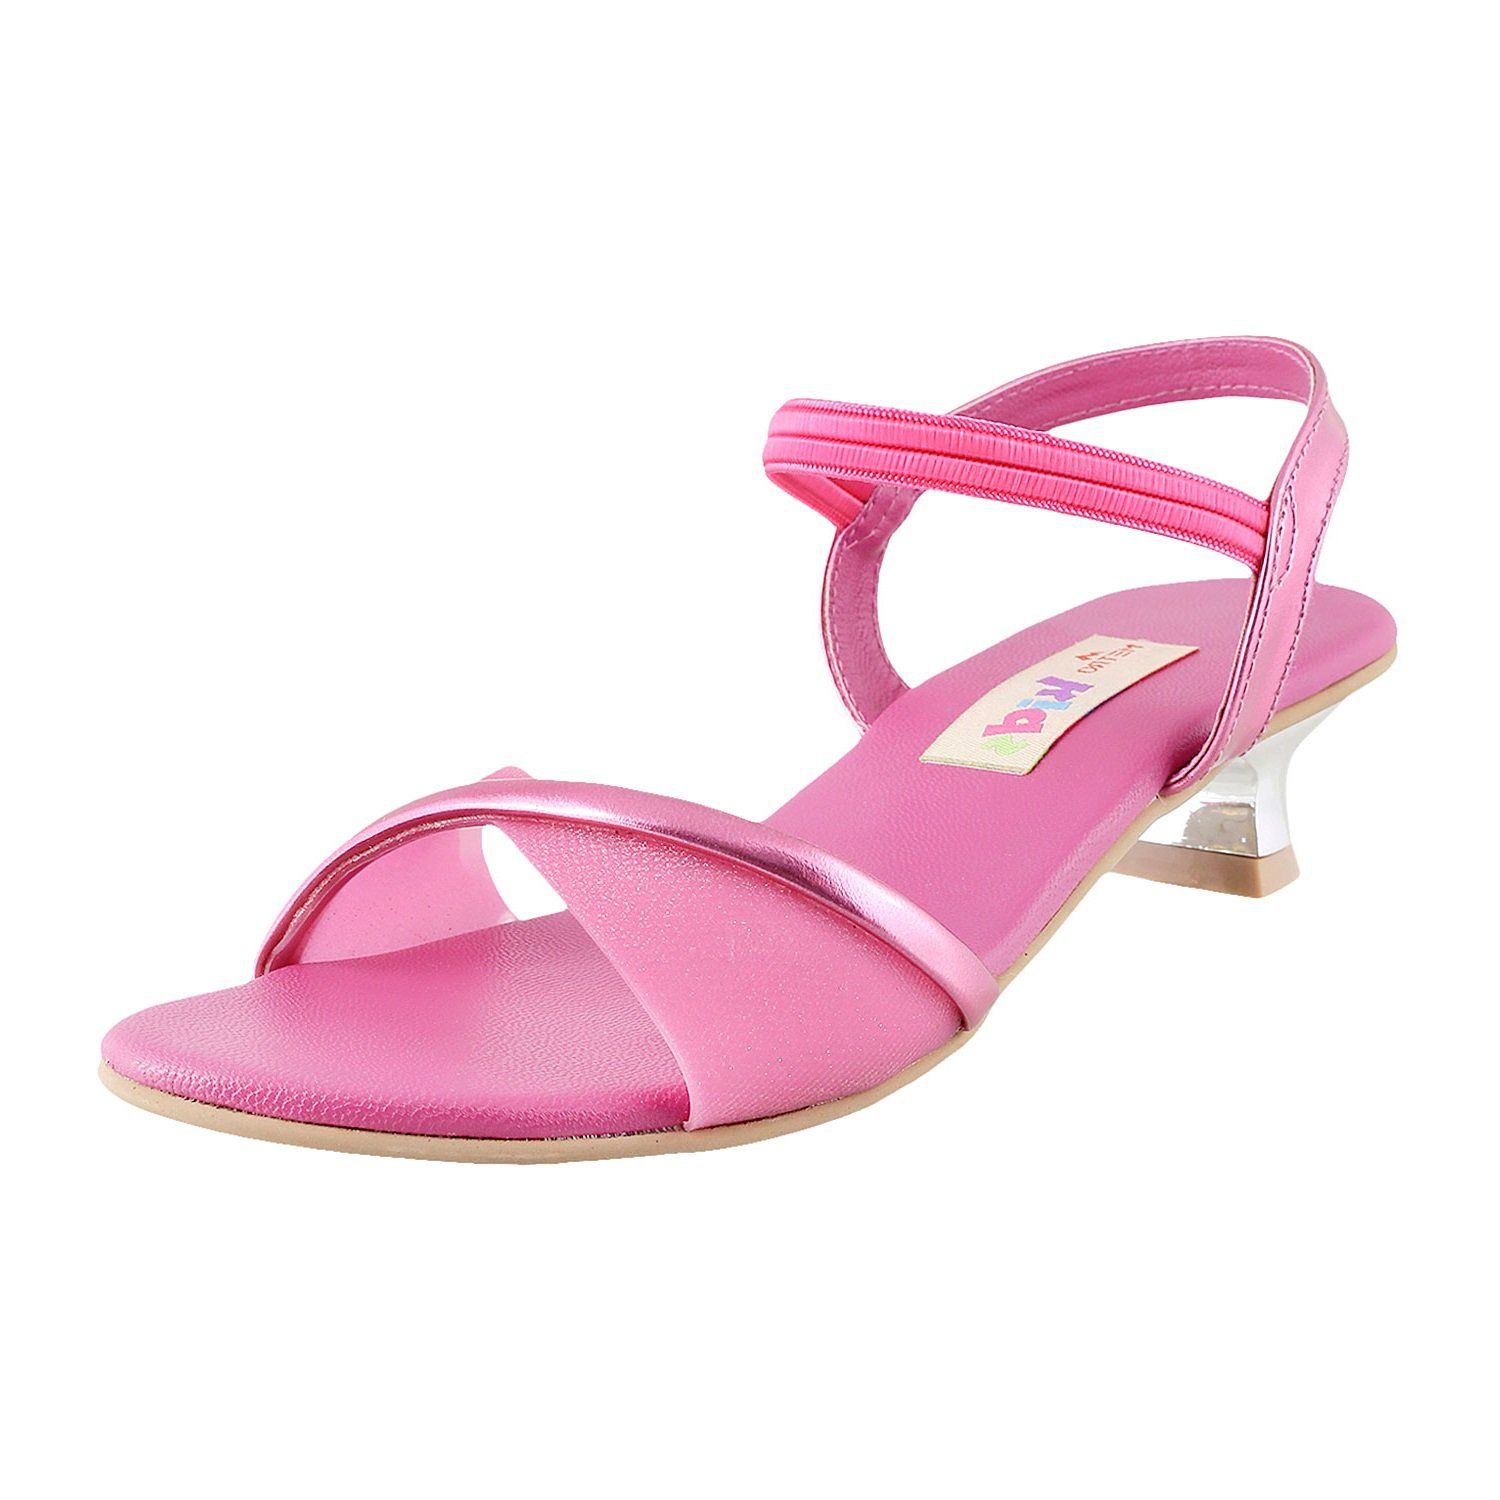 5bc347b431 Metro Kids' Shoes - Girls Sandals Pink: Buy Online at Low Prices in ...